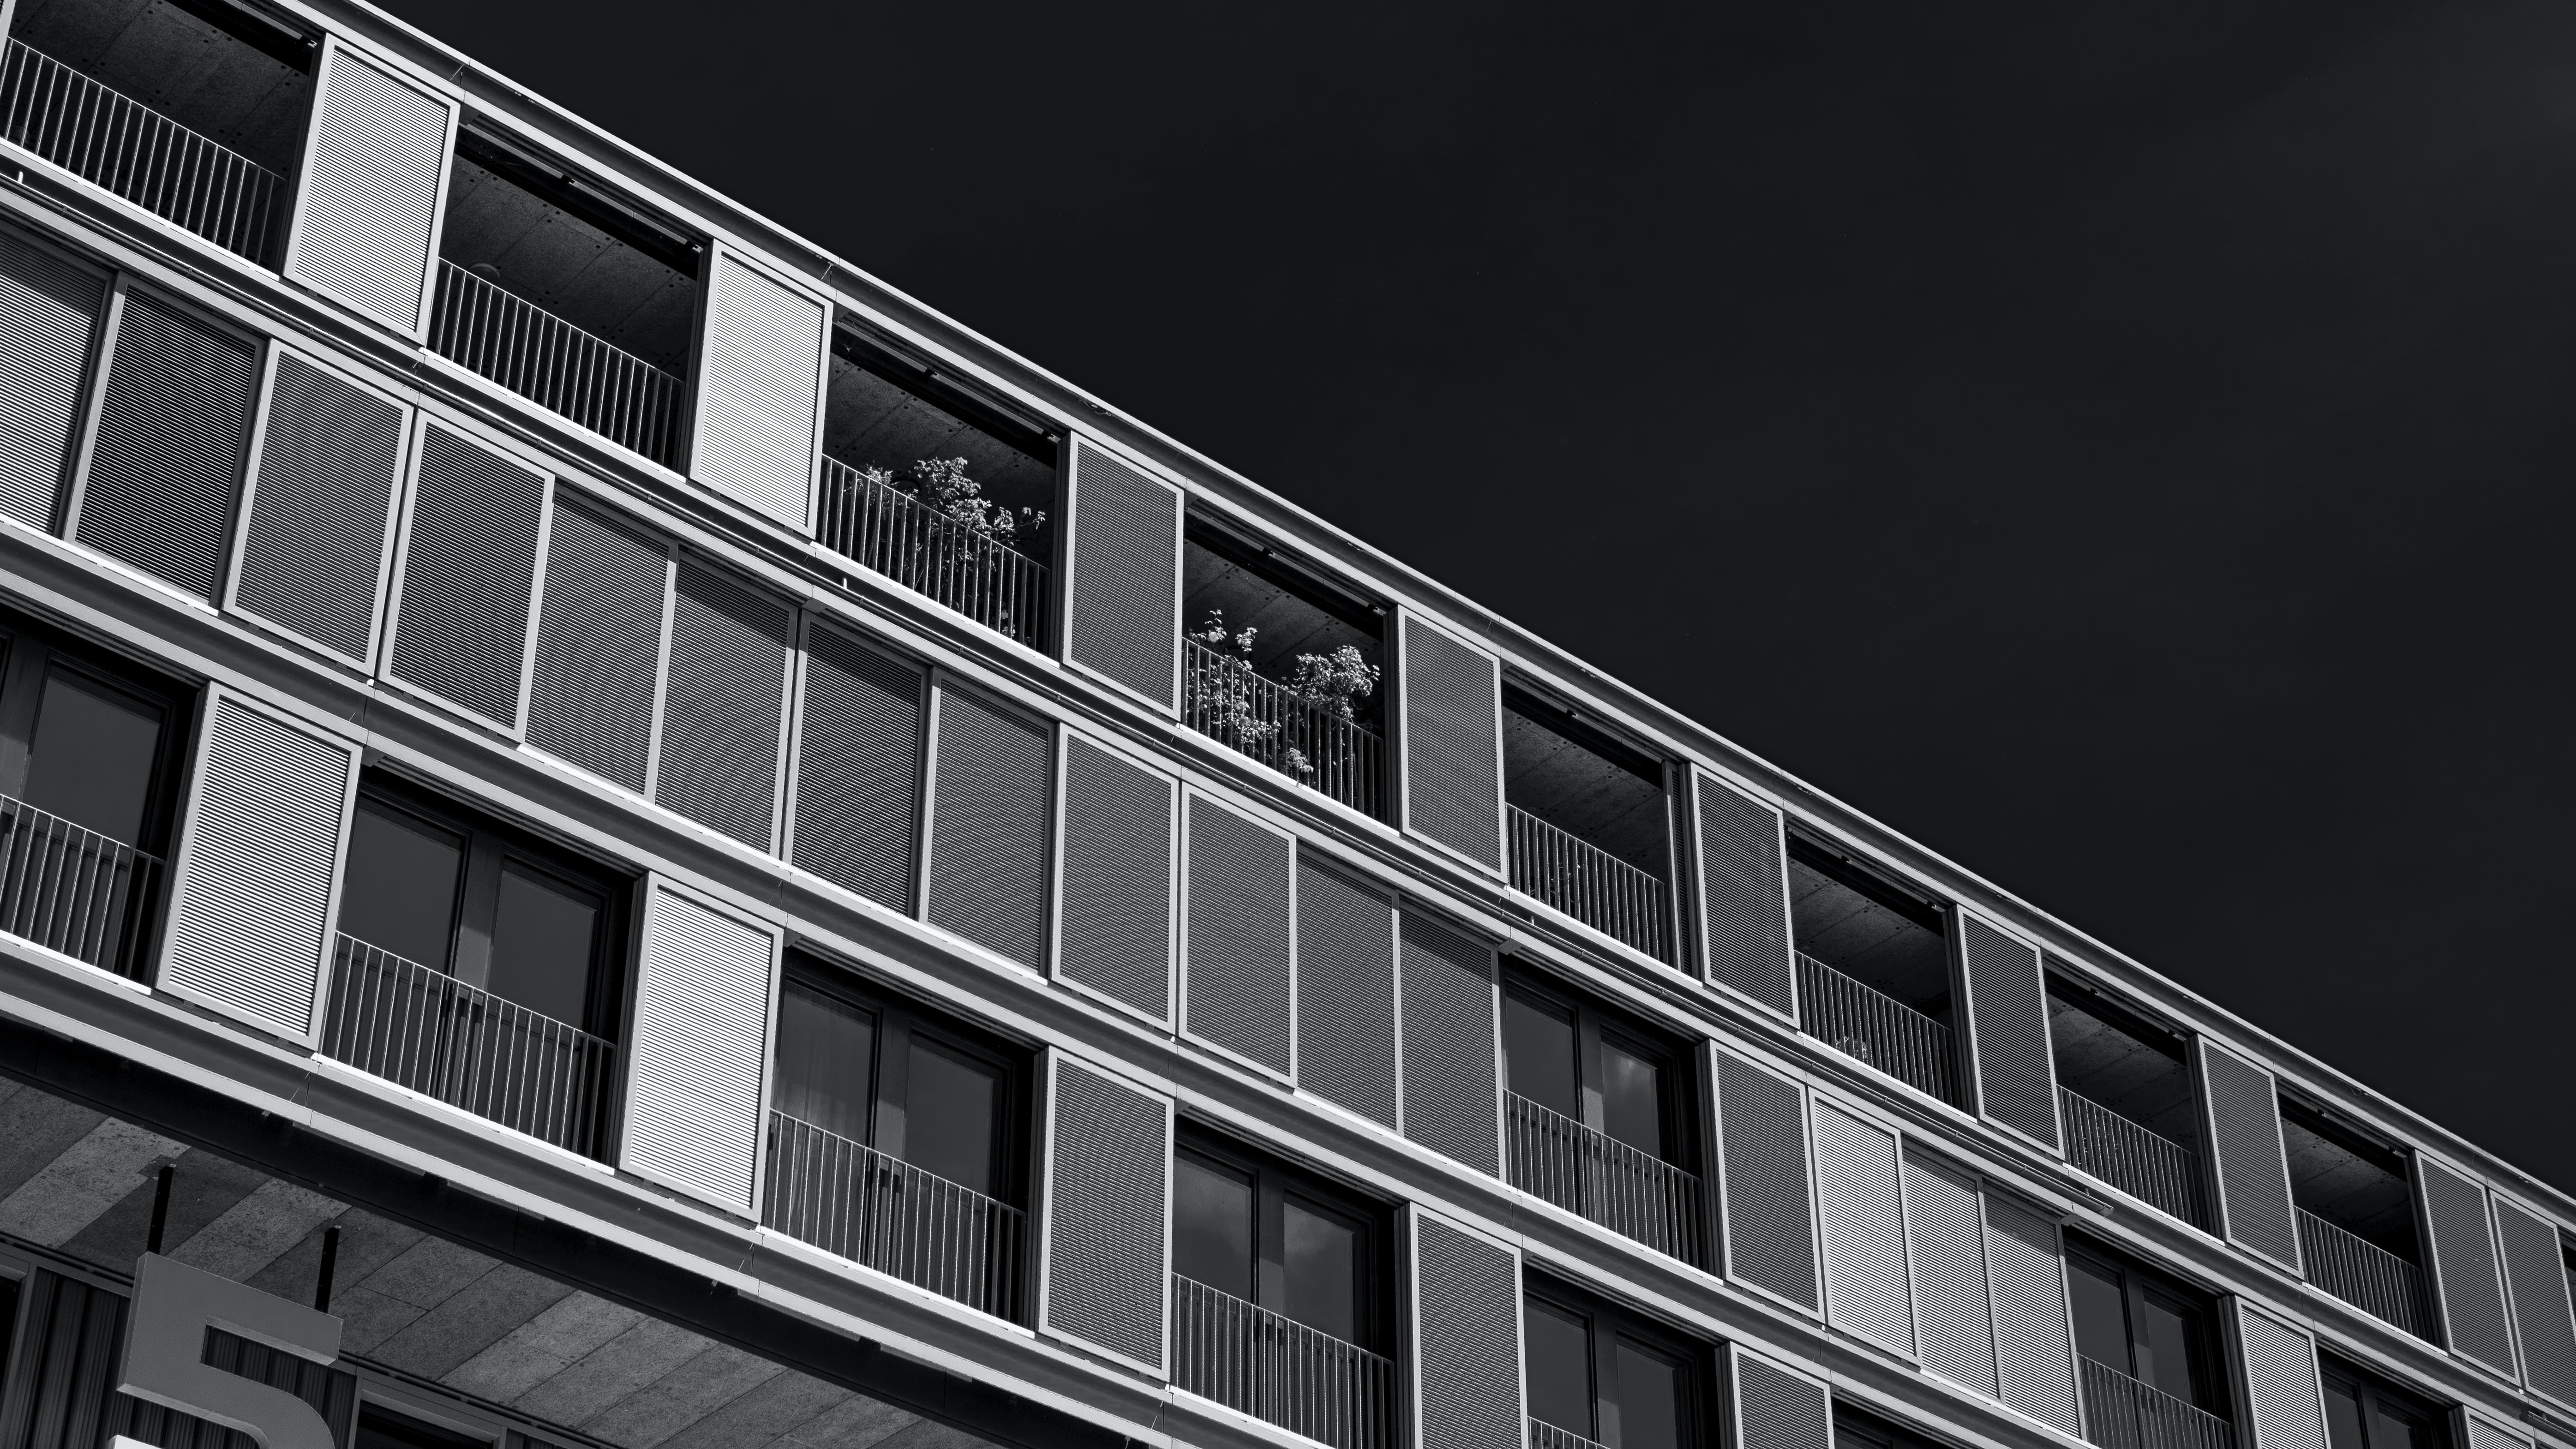 Black and whit photo of hotel